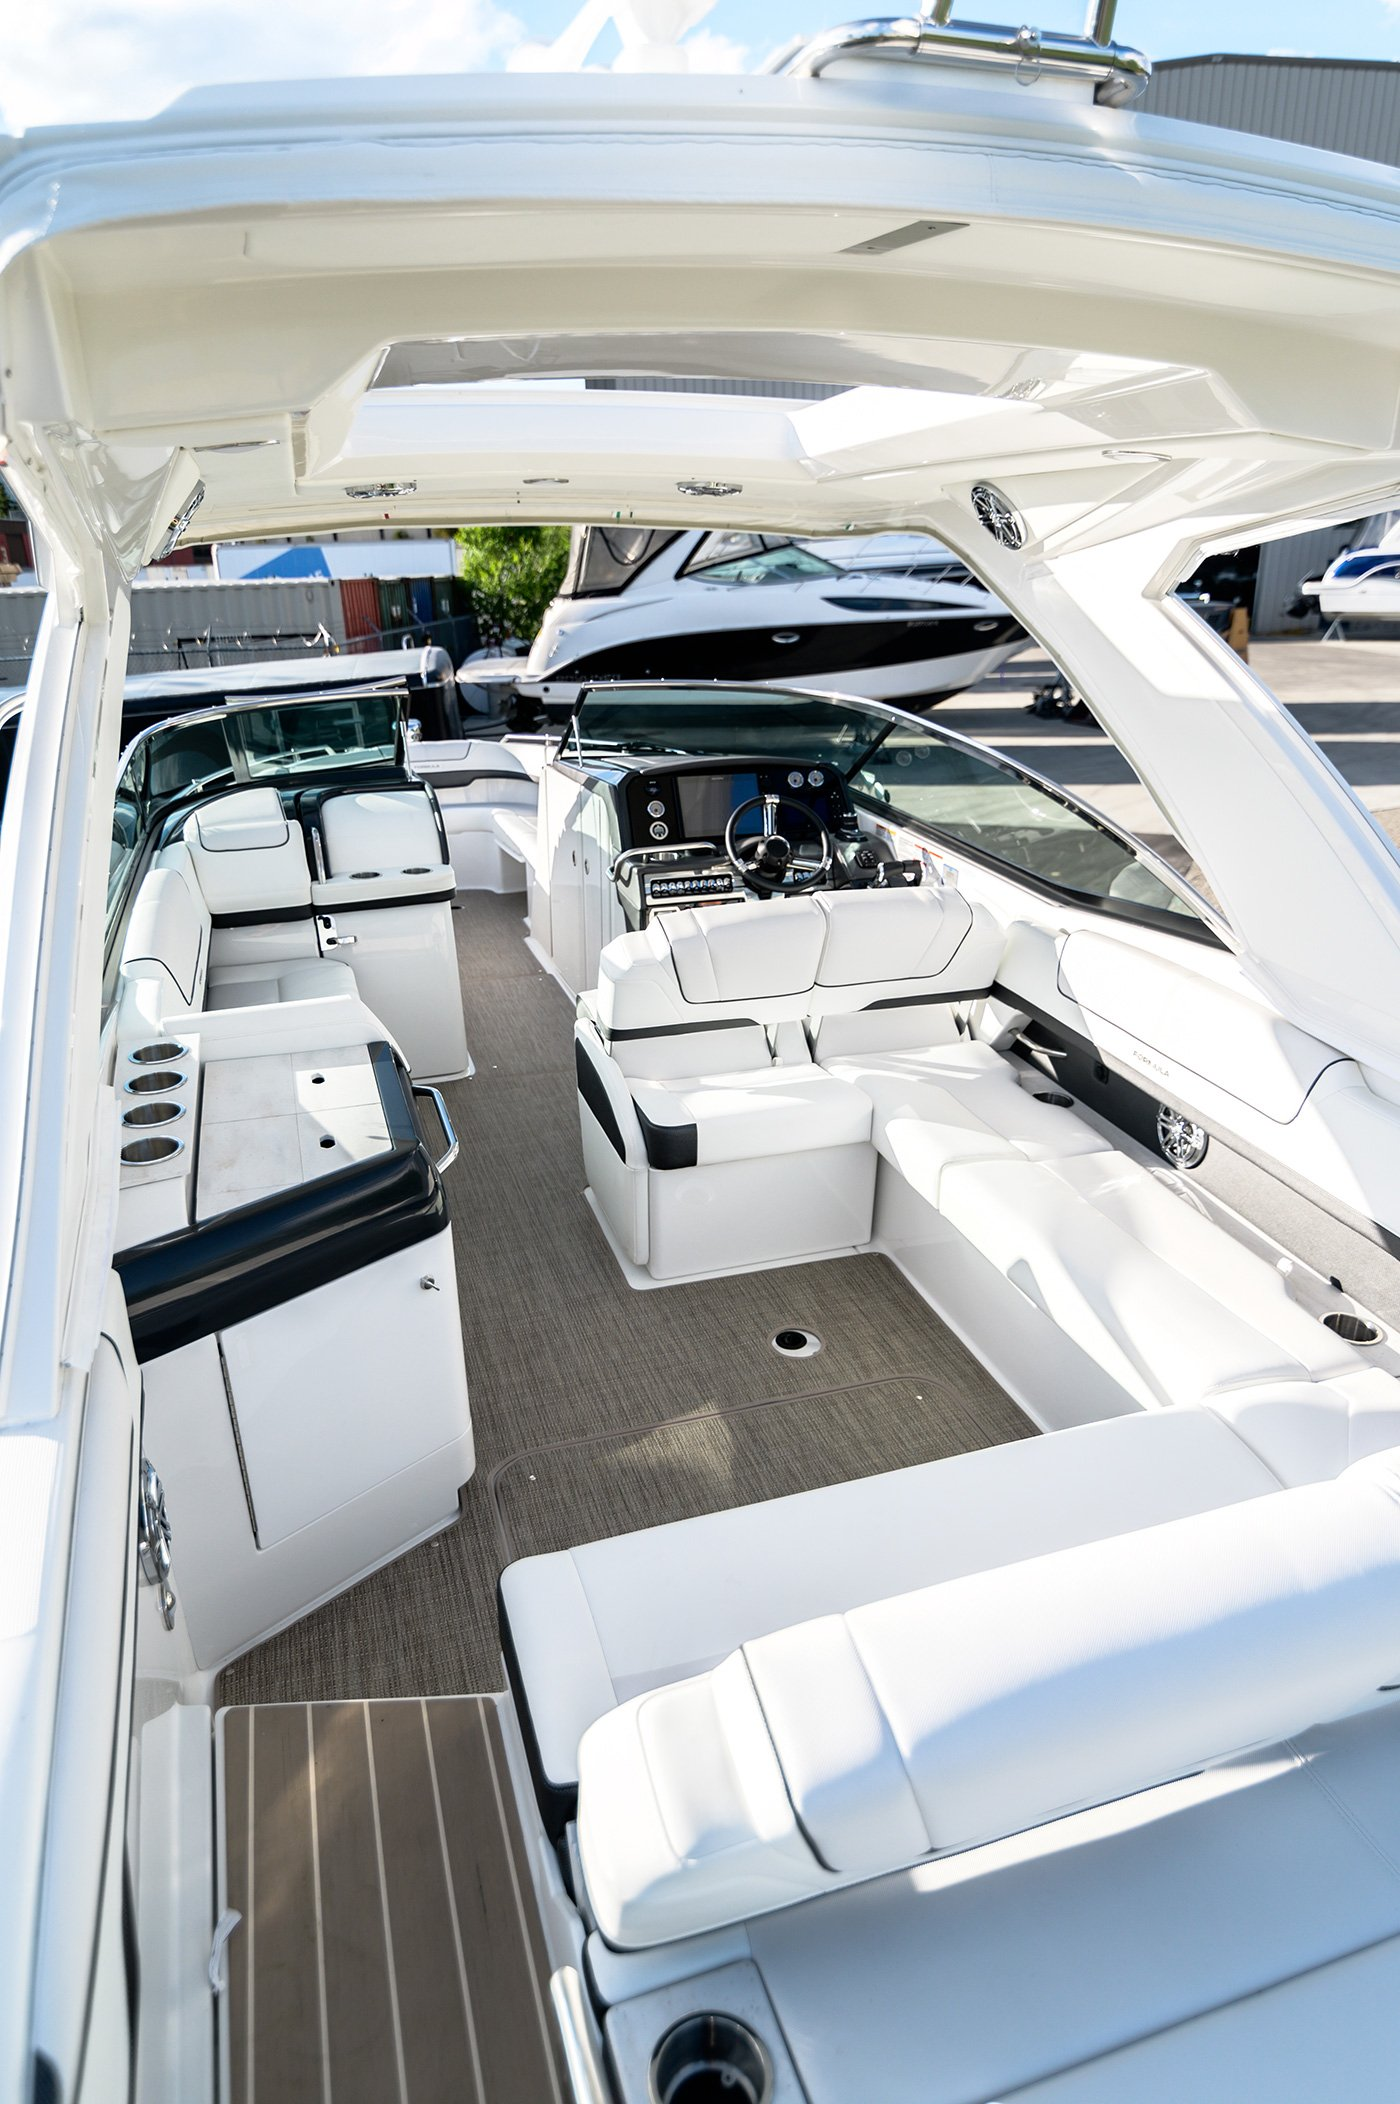 At Flagship Marine, we take pride in offering exceptional customer service through expert boat service and repairs.